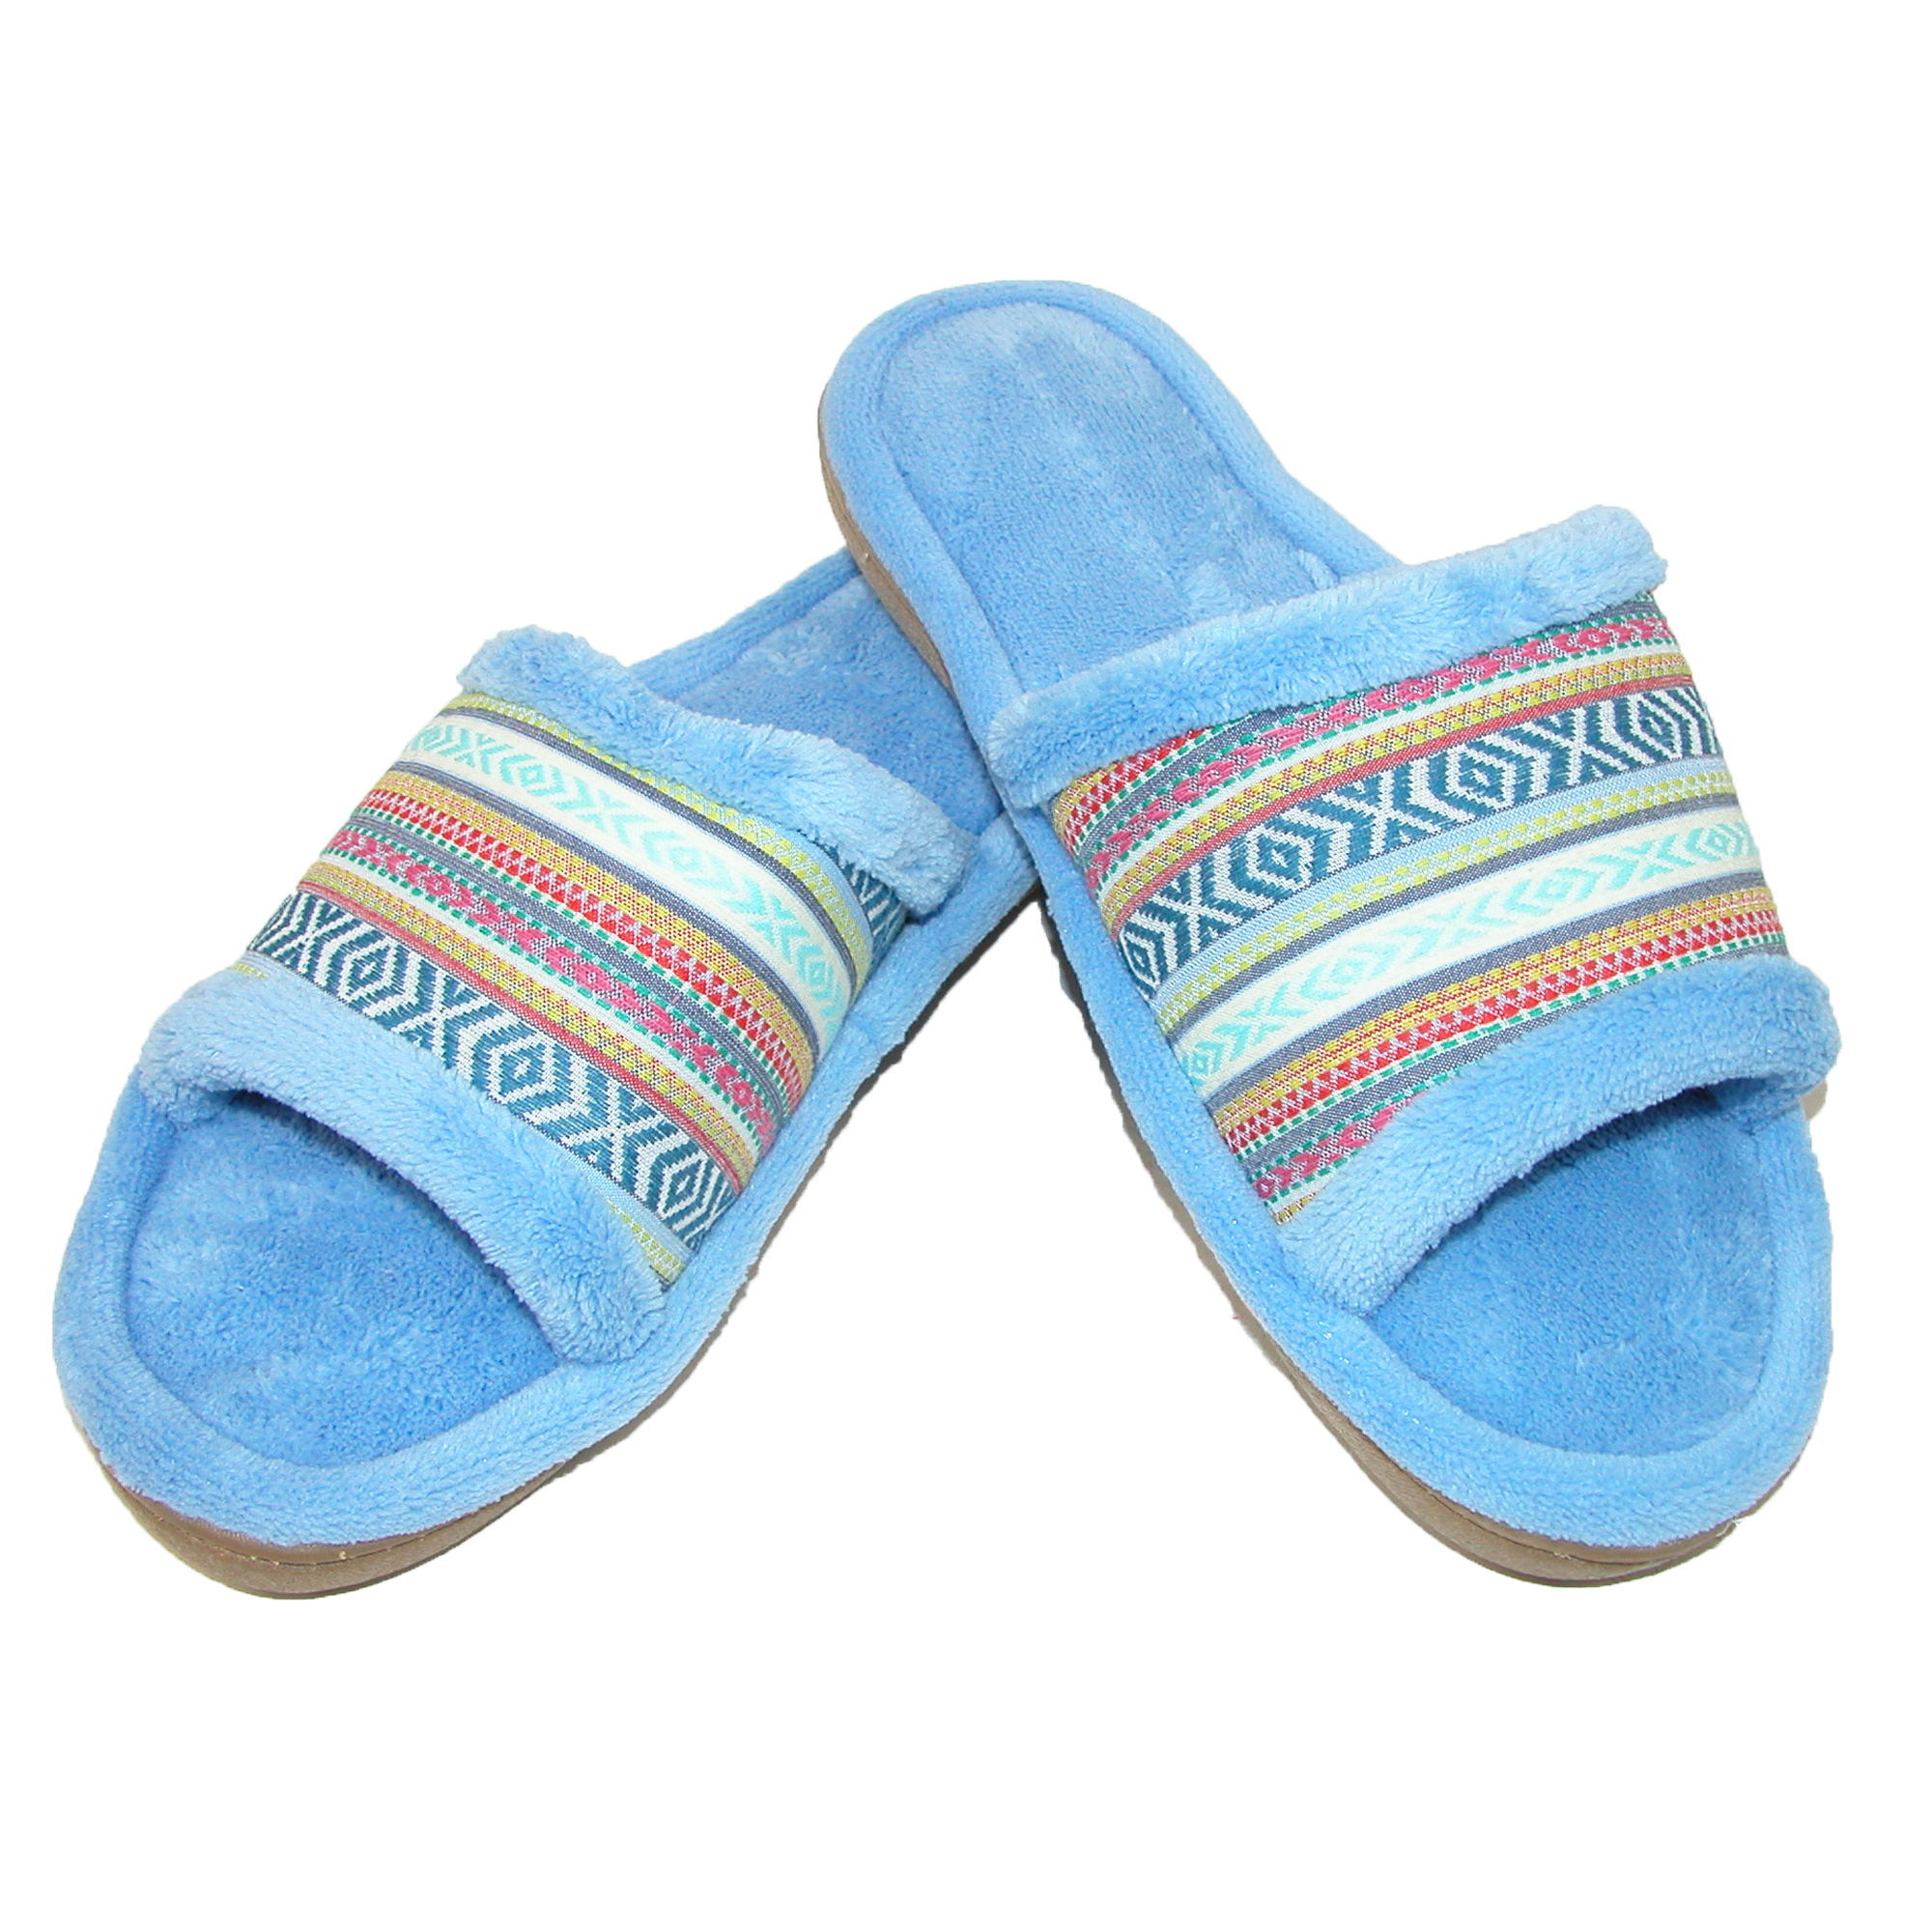 New Isotoner Women's Microterry Mallory Striped Slide ...